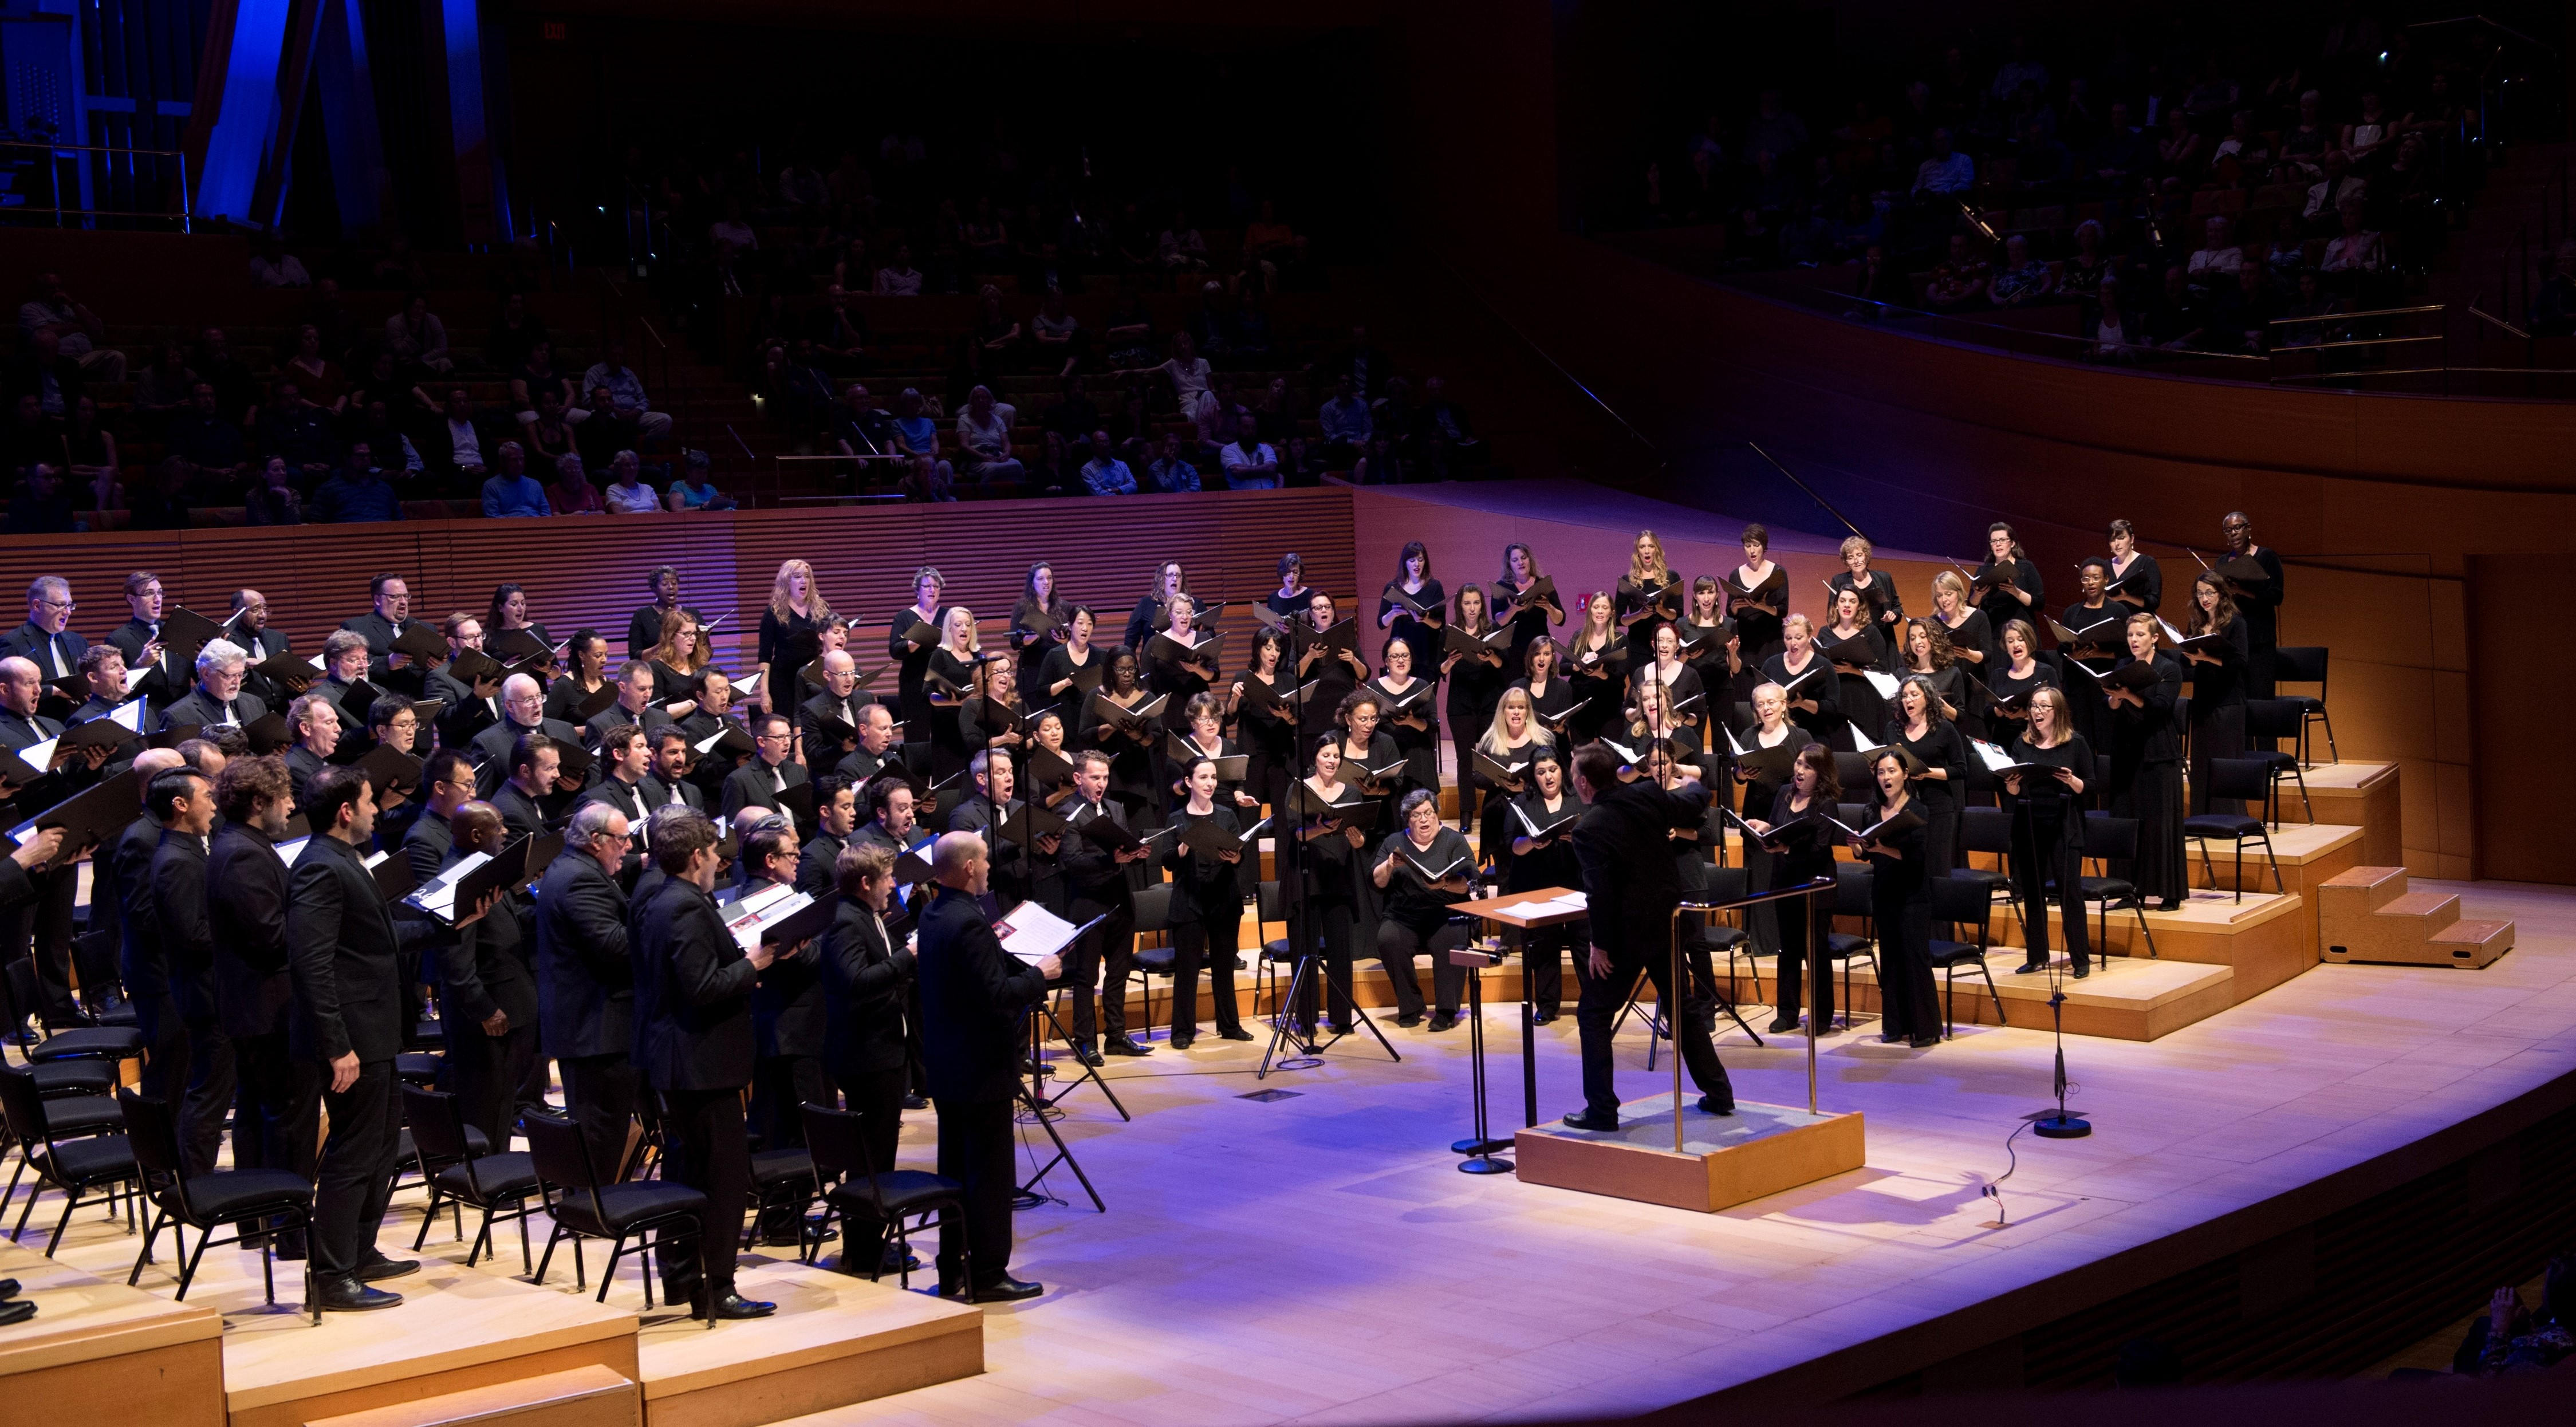 Los Angeles Master Chorale Receives Challenge Grant from Abbott L. Brown Foundation to Establish Leadership Circle